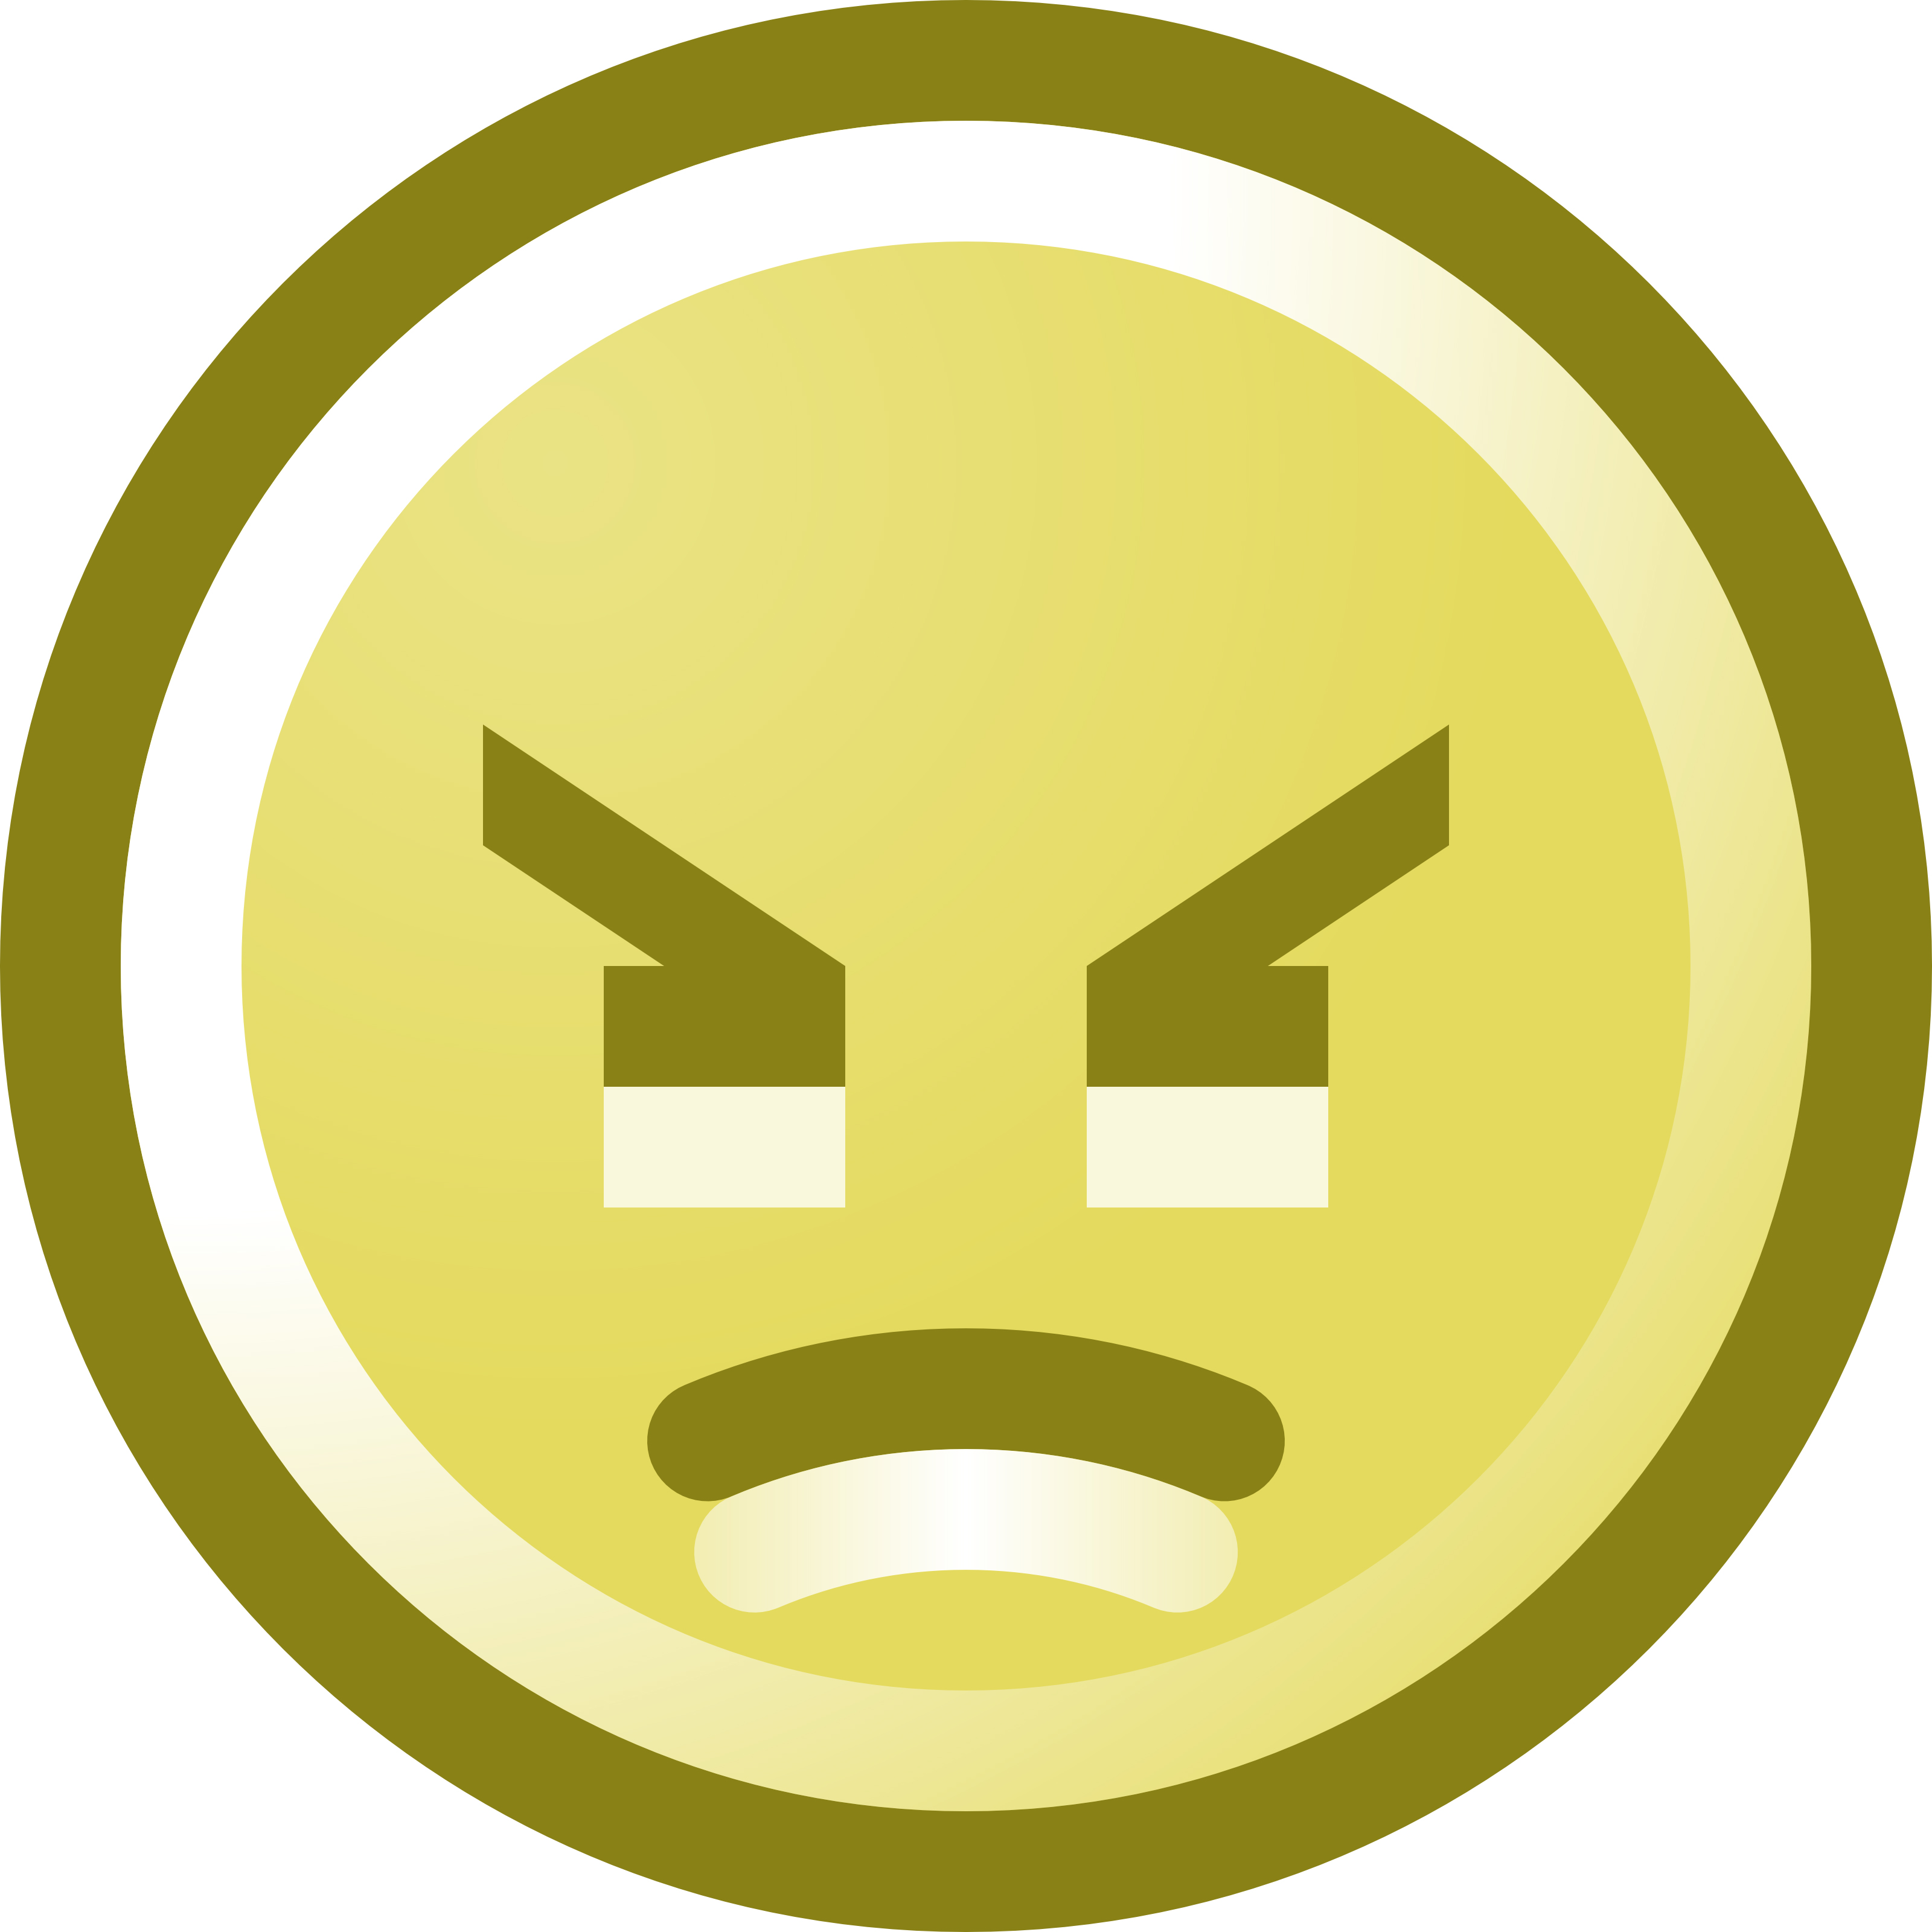 Free Angry Smiley Face Clip Art Illustration by 000129